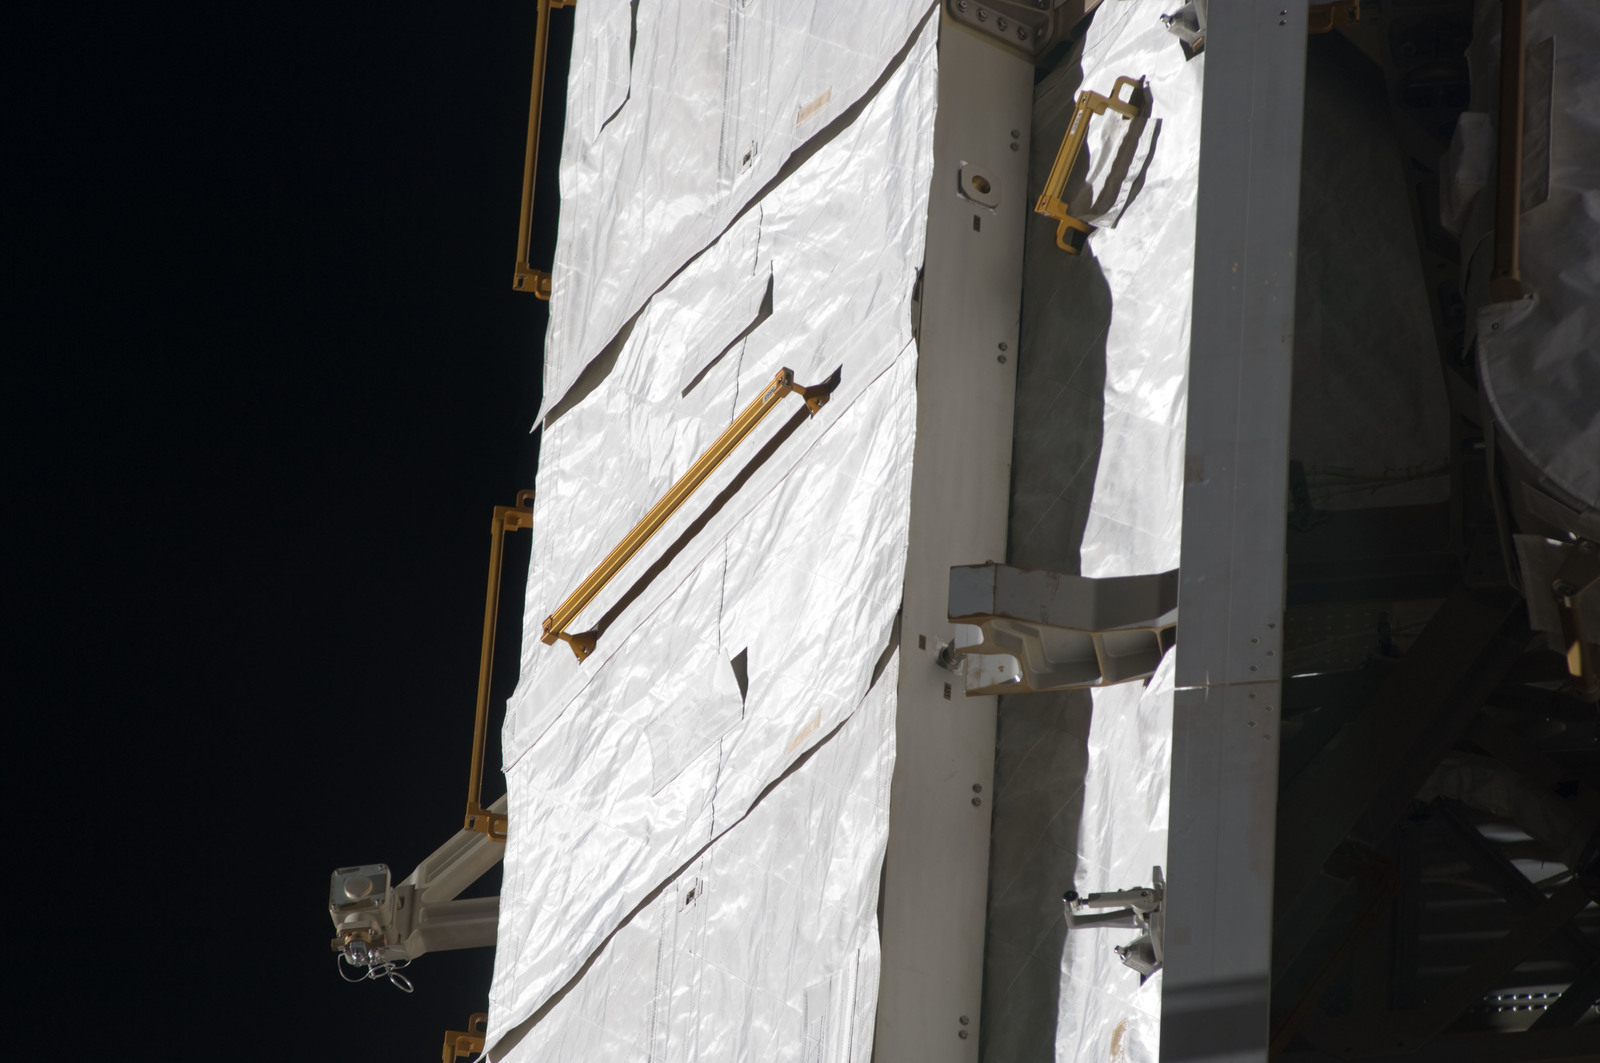 S134E009872 - STS-134 - Close-up view of P1 Truss